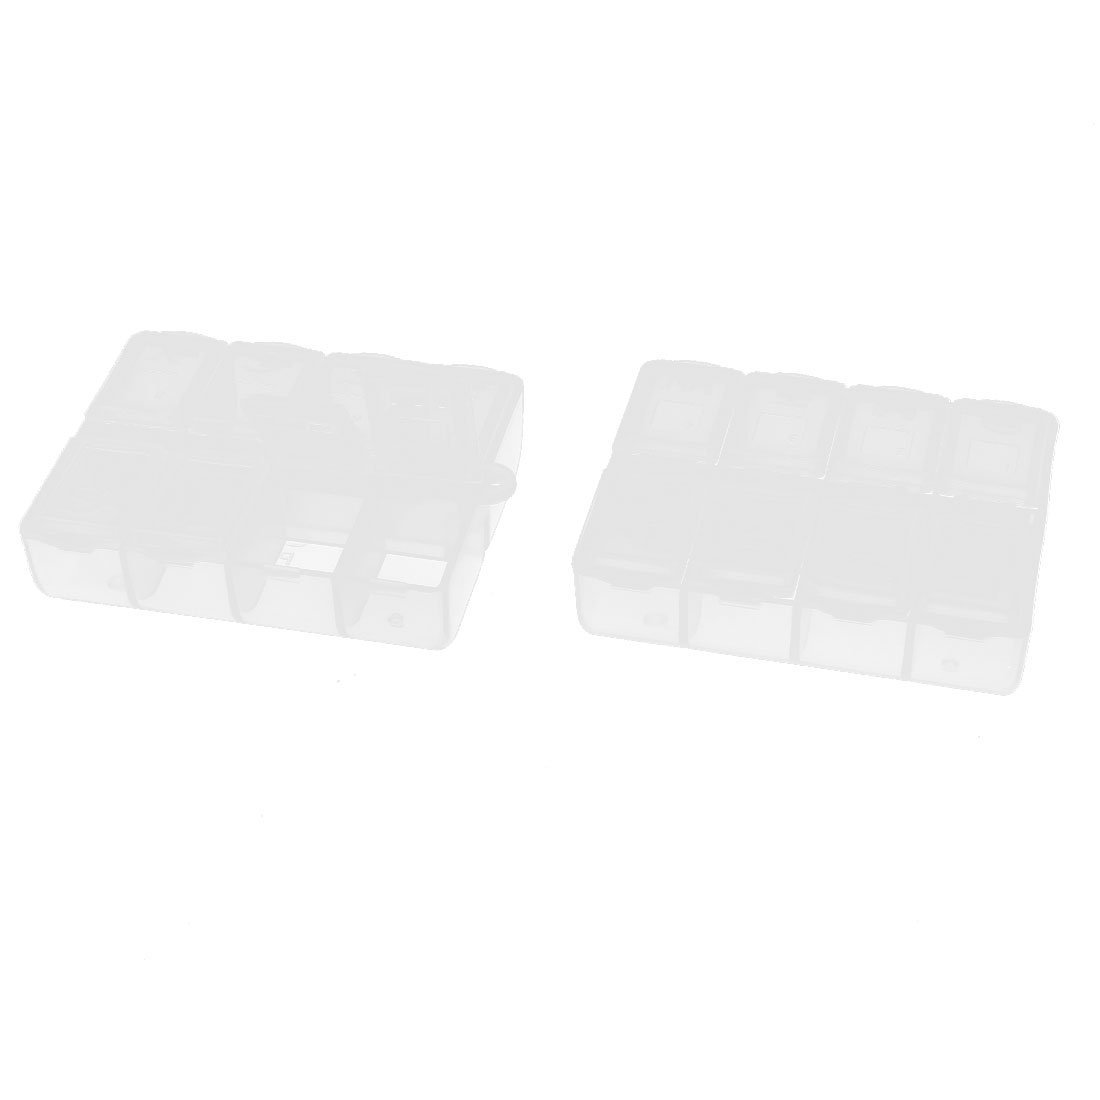 Aexit 2 Pcs Tool Organizers 8 Grid SMD SMT DIY Component Plastic Mini Storage Box Tool Boxes Case Clear